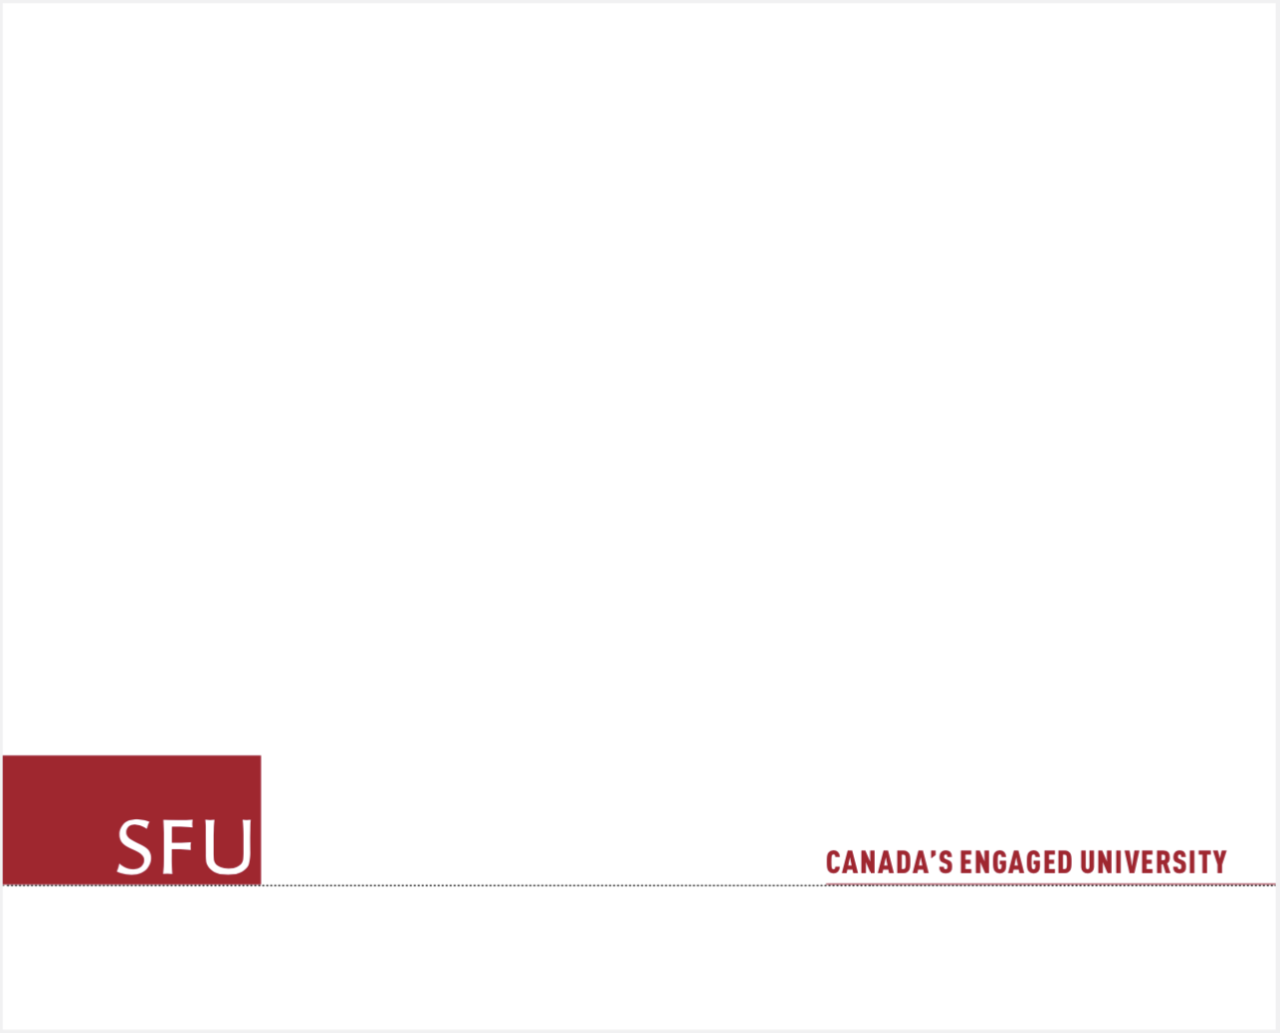 SFU tagline positioned opposit the logo